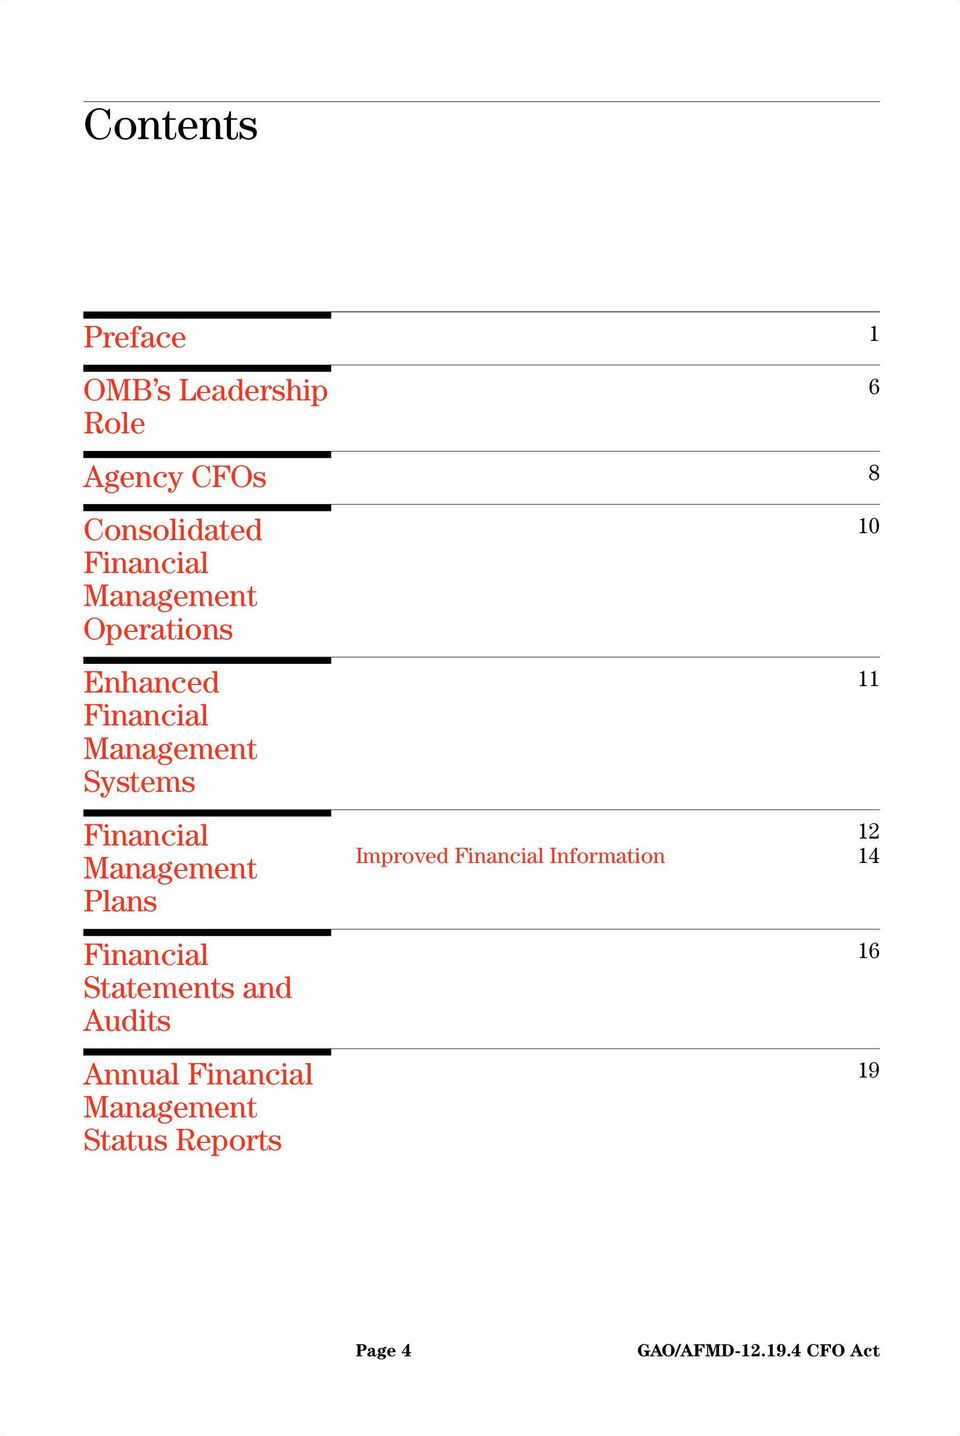 Financial Management Plans Financial Statements and Audits Annual